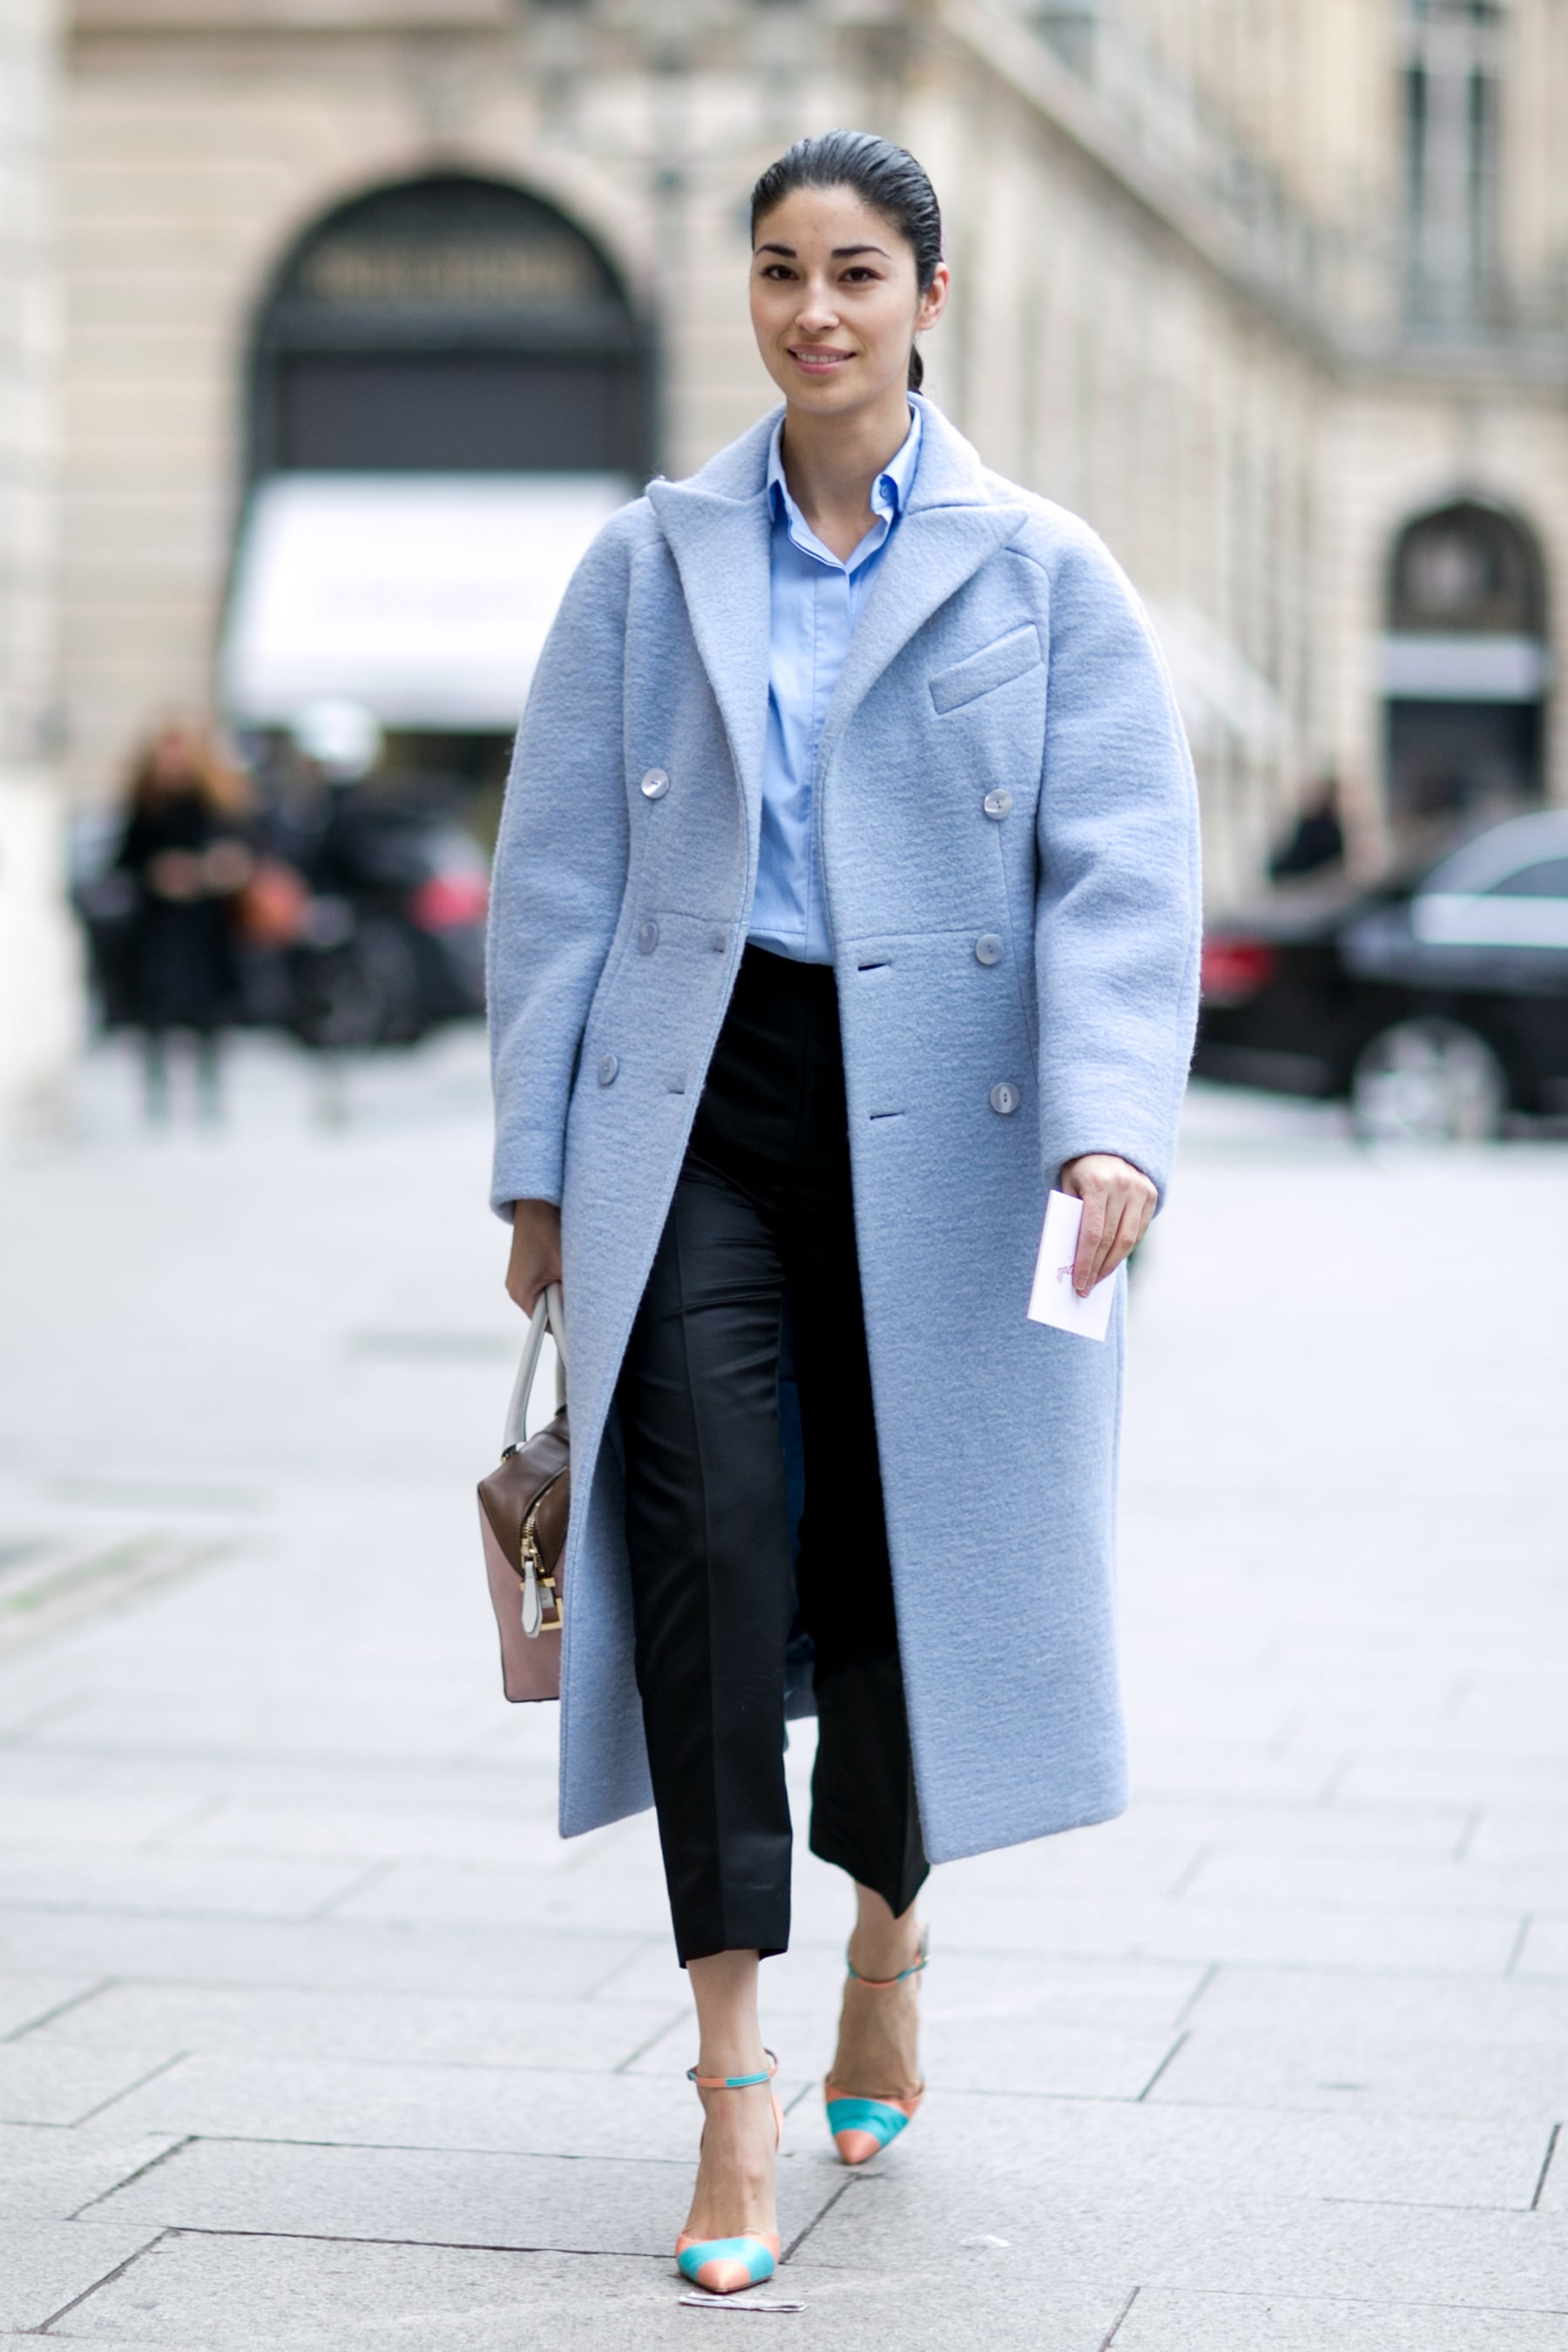 Caroline Issa captivated us with one great piece of outerwear.